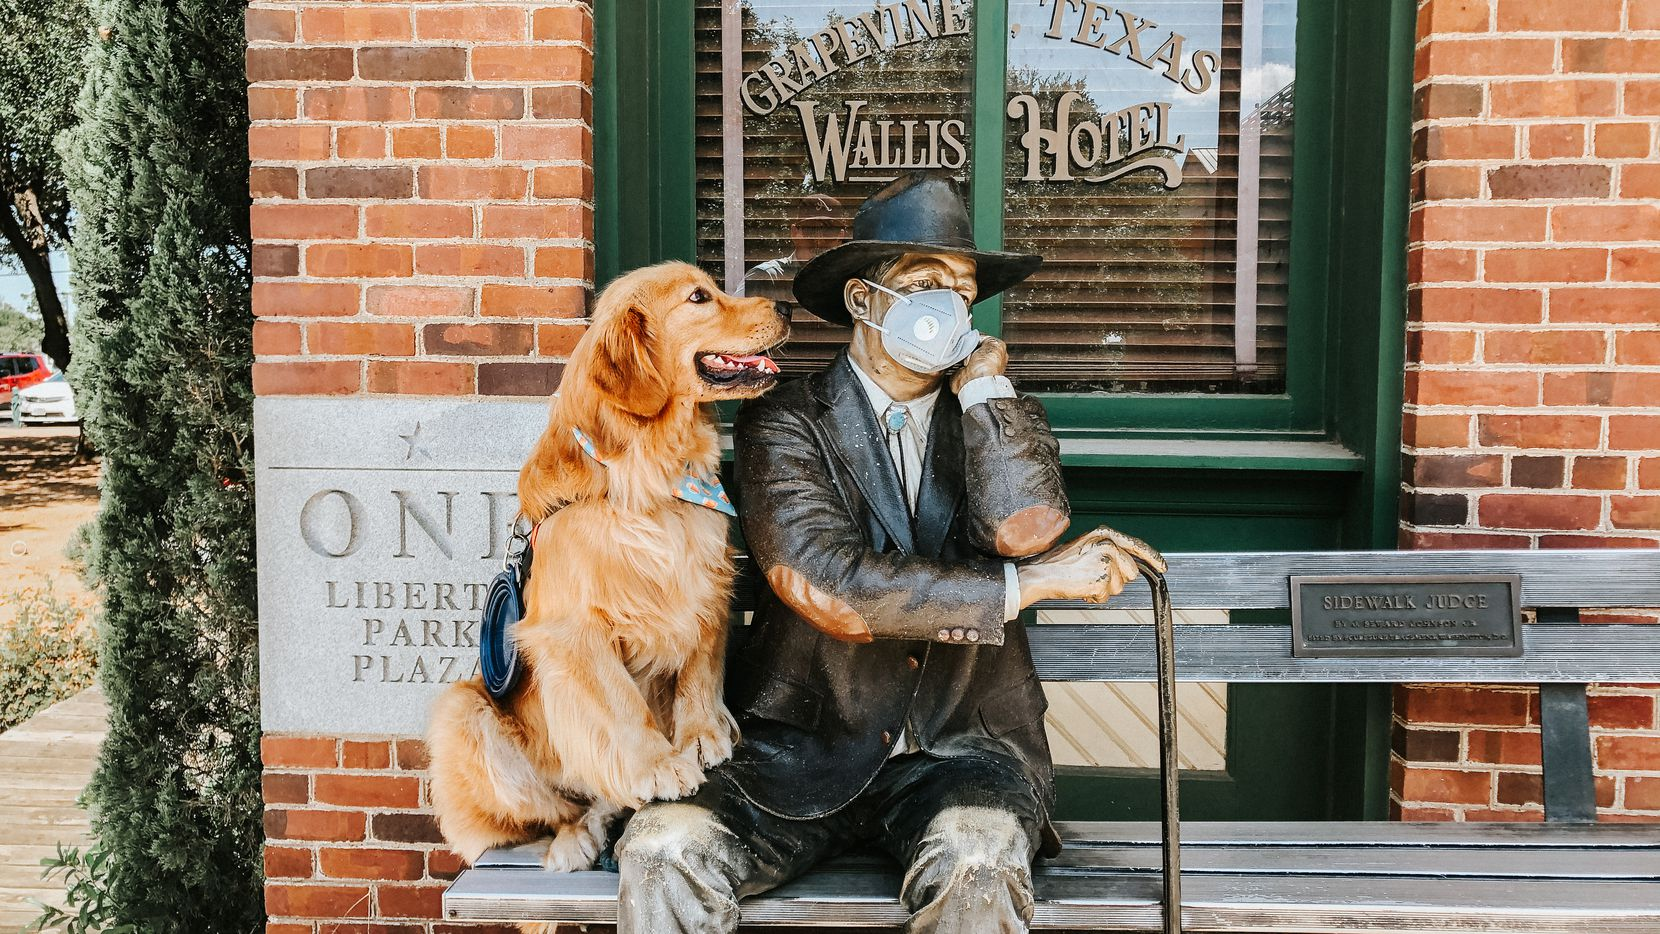 Instagram-famous Golden Retriever Harvey sits on the bench next to The Sidewalk Judge sculpture on Grapevine's Main Street. Harvey lives with his owners, Lindsey and Kurt Houck in Grapevine, TX.